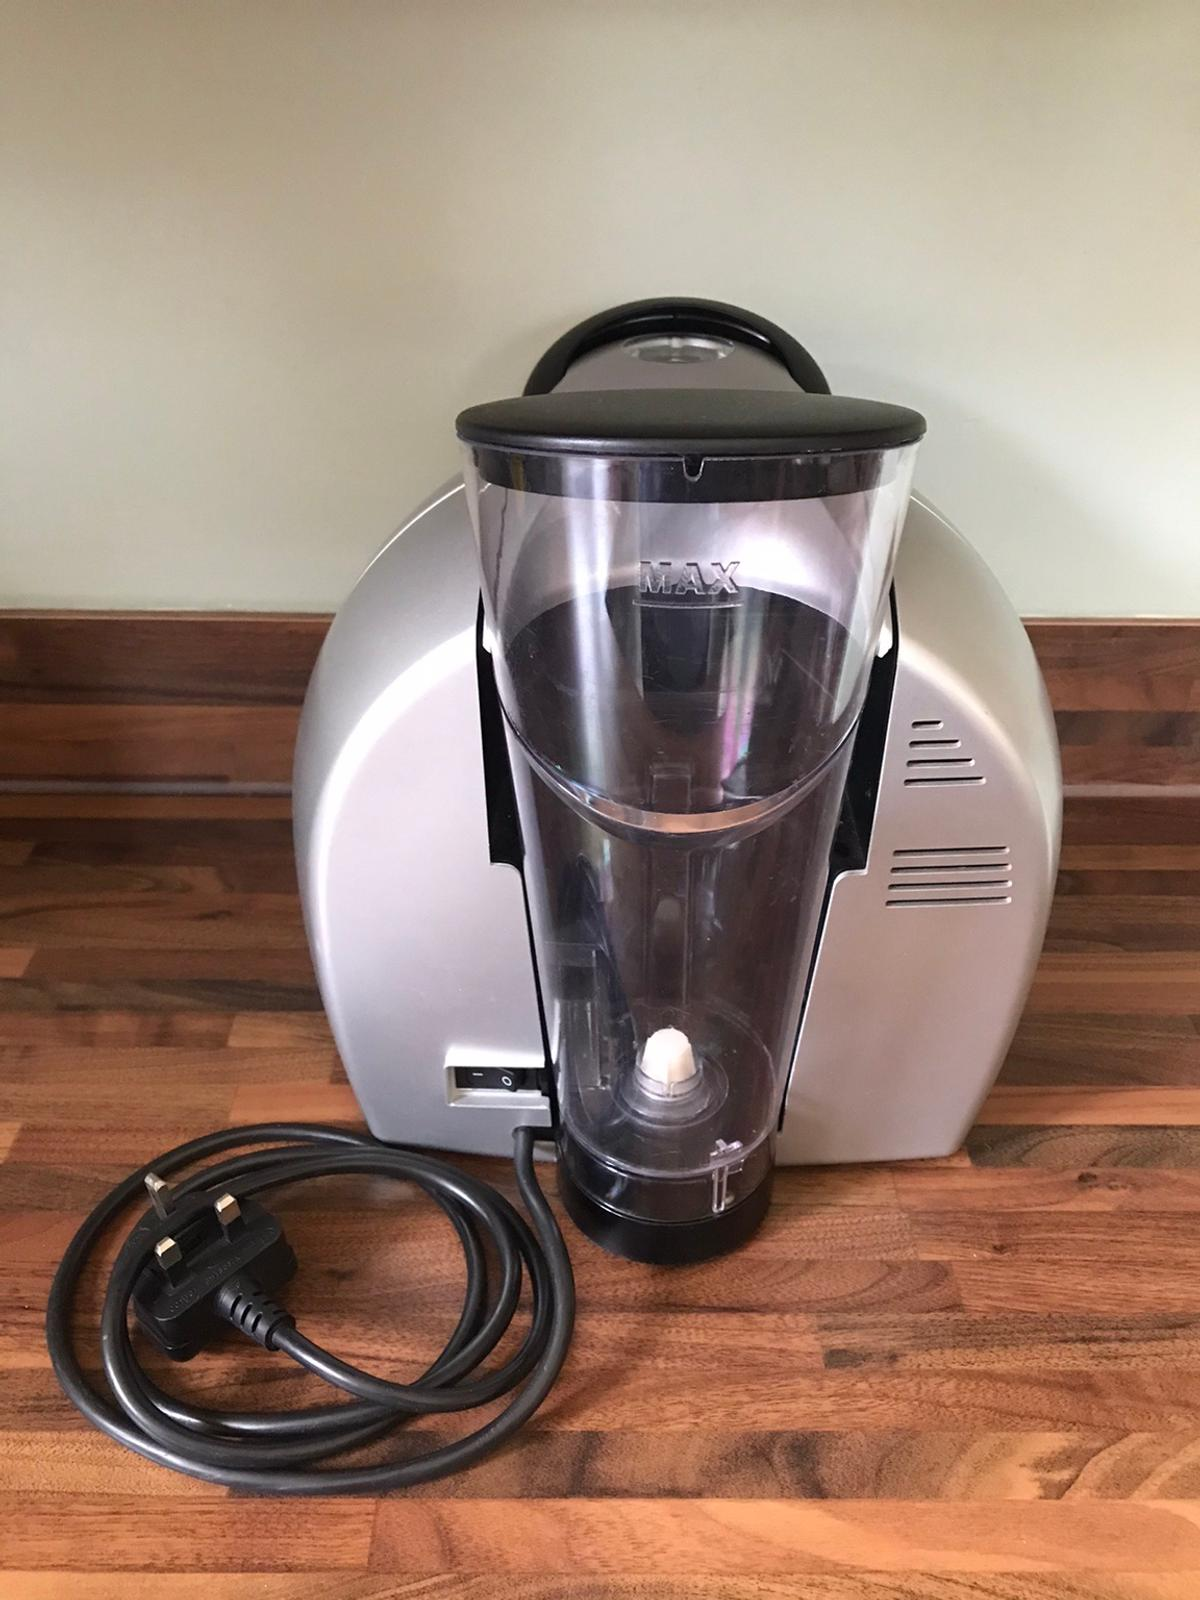 Braun tassimo 3107 coffee maker Hardly used machine fully functional. Getting rid just because we don't have a use for it.  £20, collection from Pitstone.  Adhering to social distancing eg place outside front door for collection.